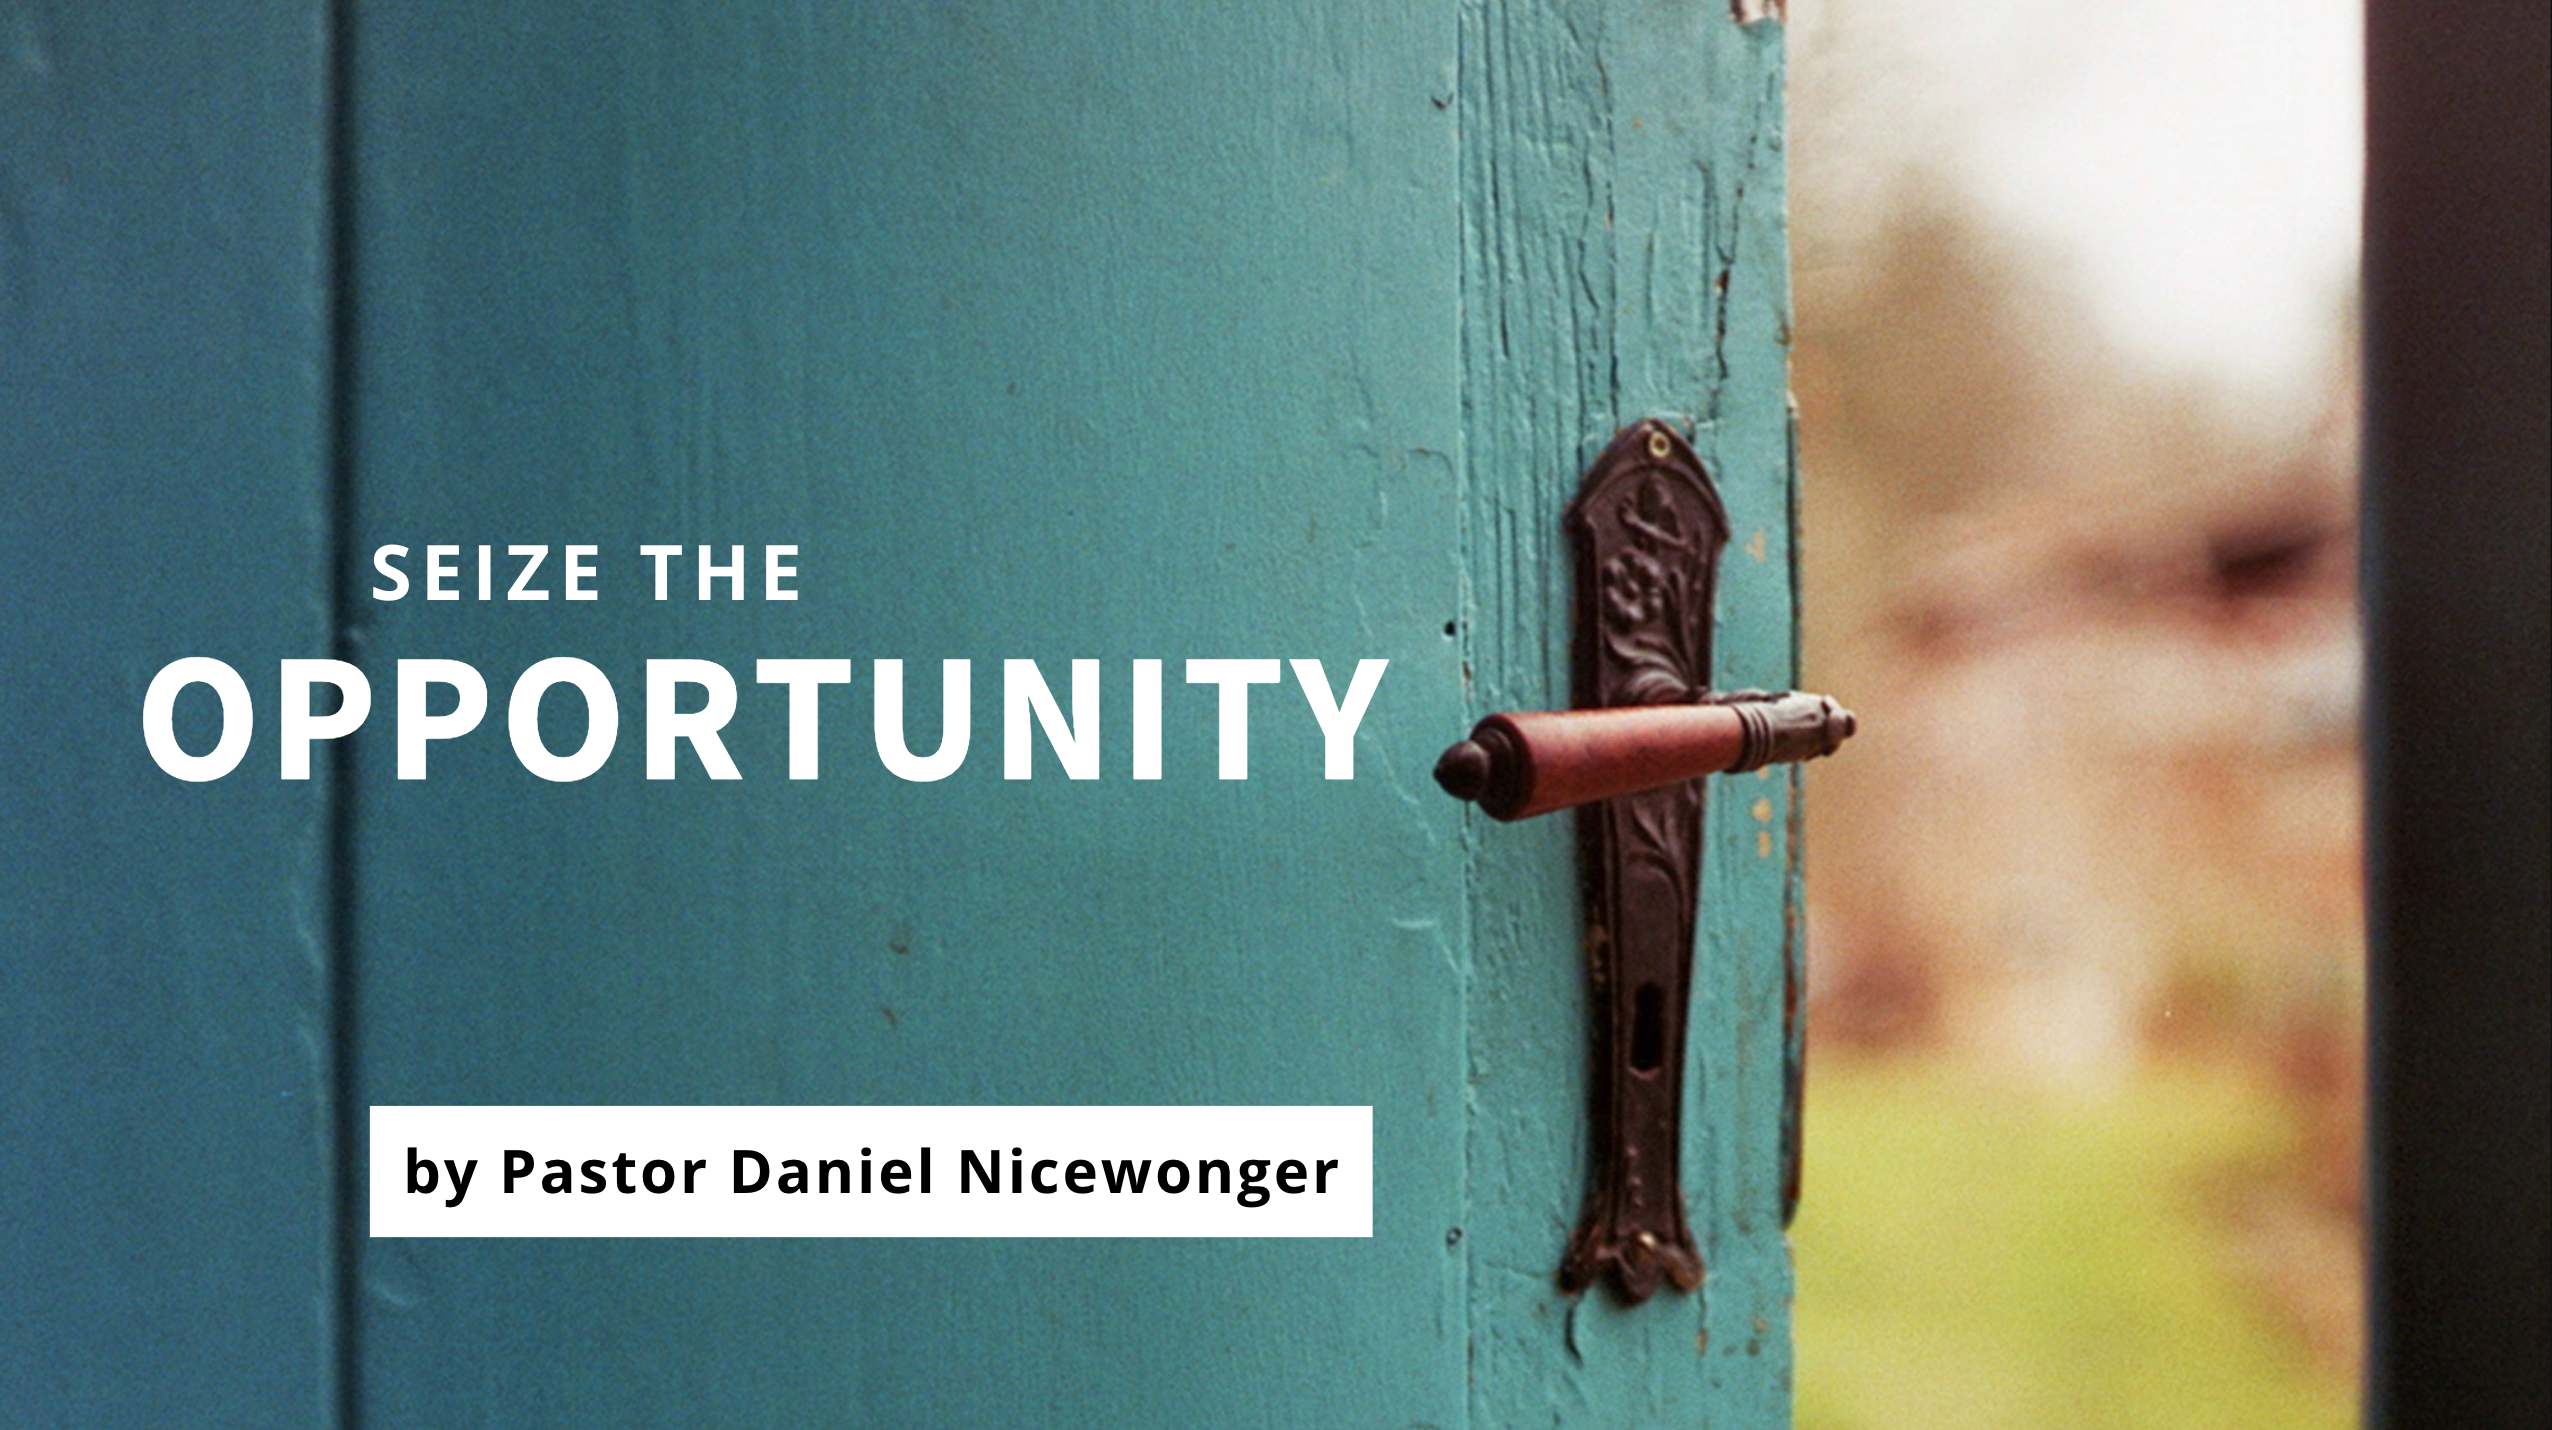 Pastor Daniel Nicewonger blog Seize the Opportunity